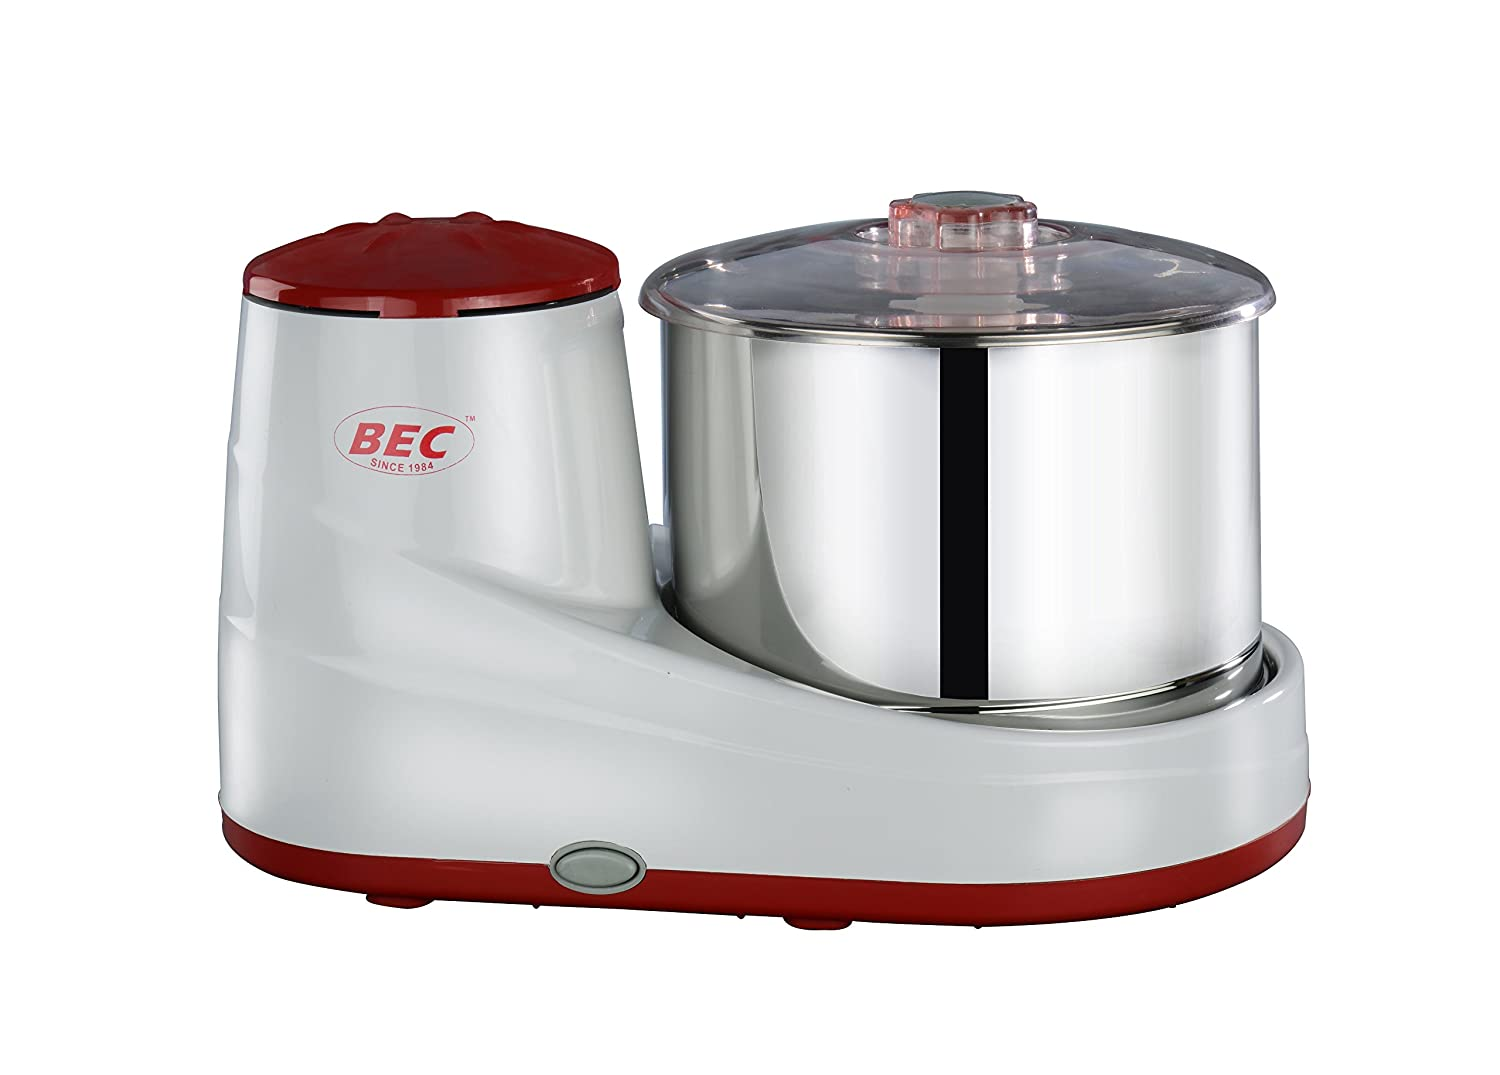 BEC ABS Stainless Steel Plus 2L Tabletop Wet Grinder (White and Red)